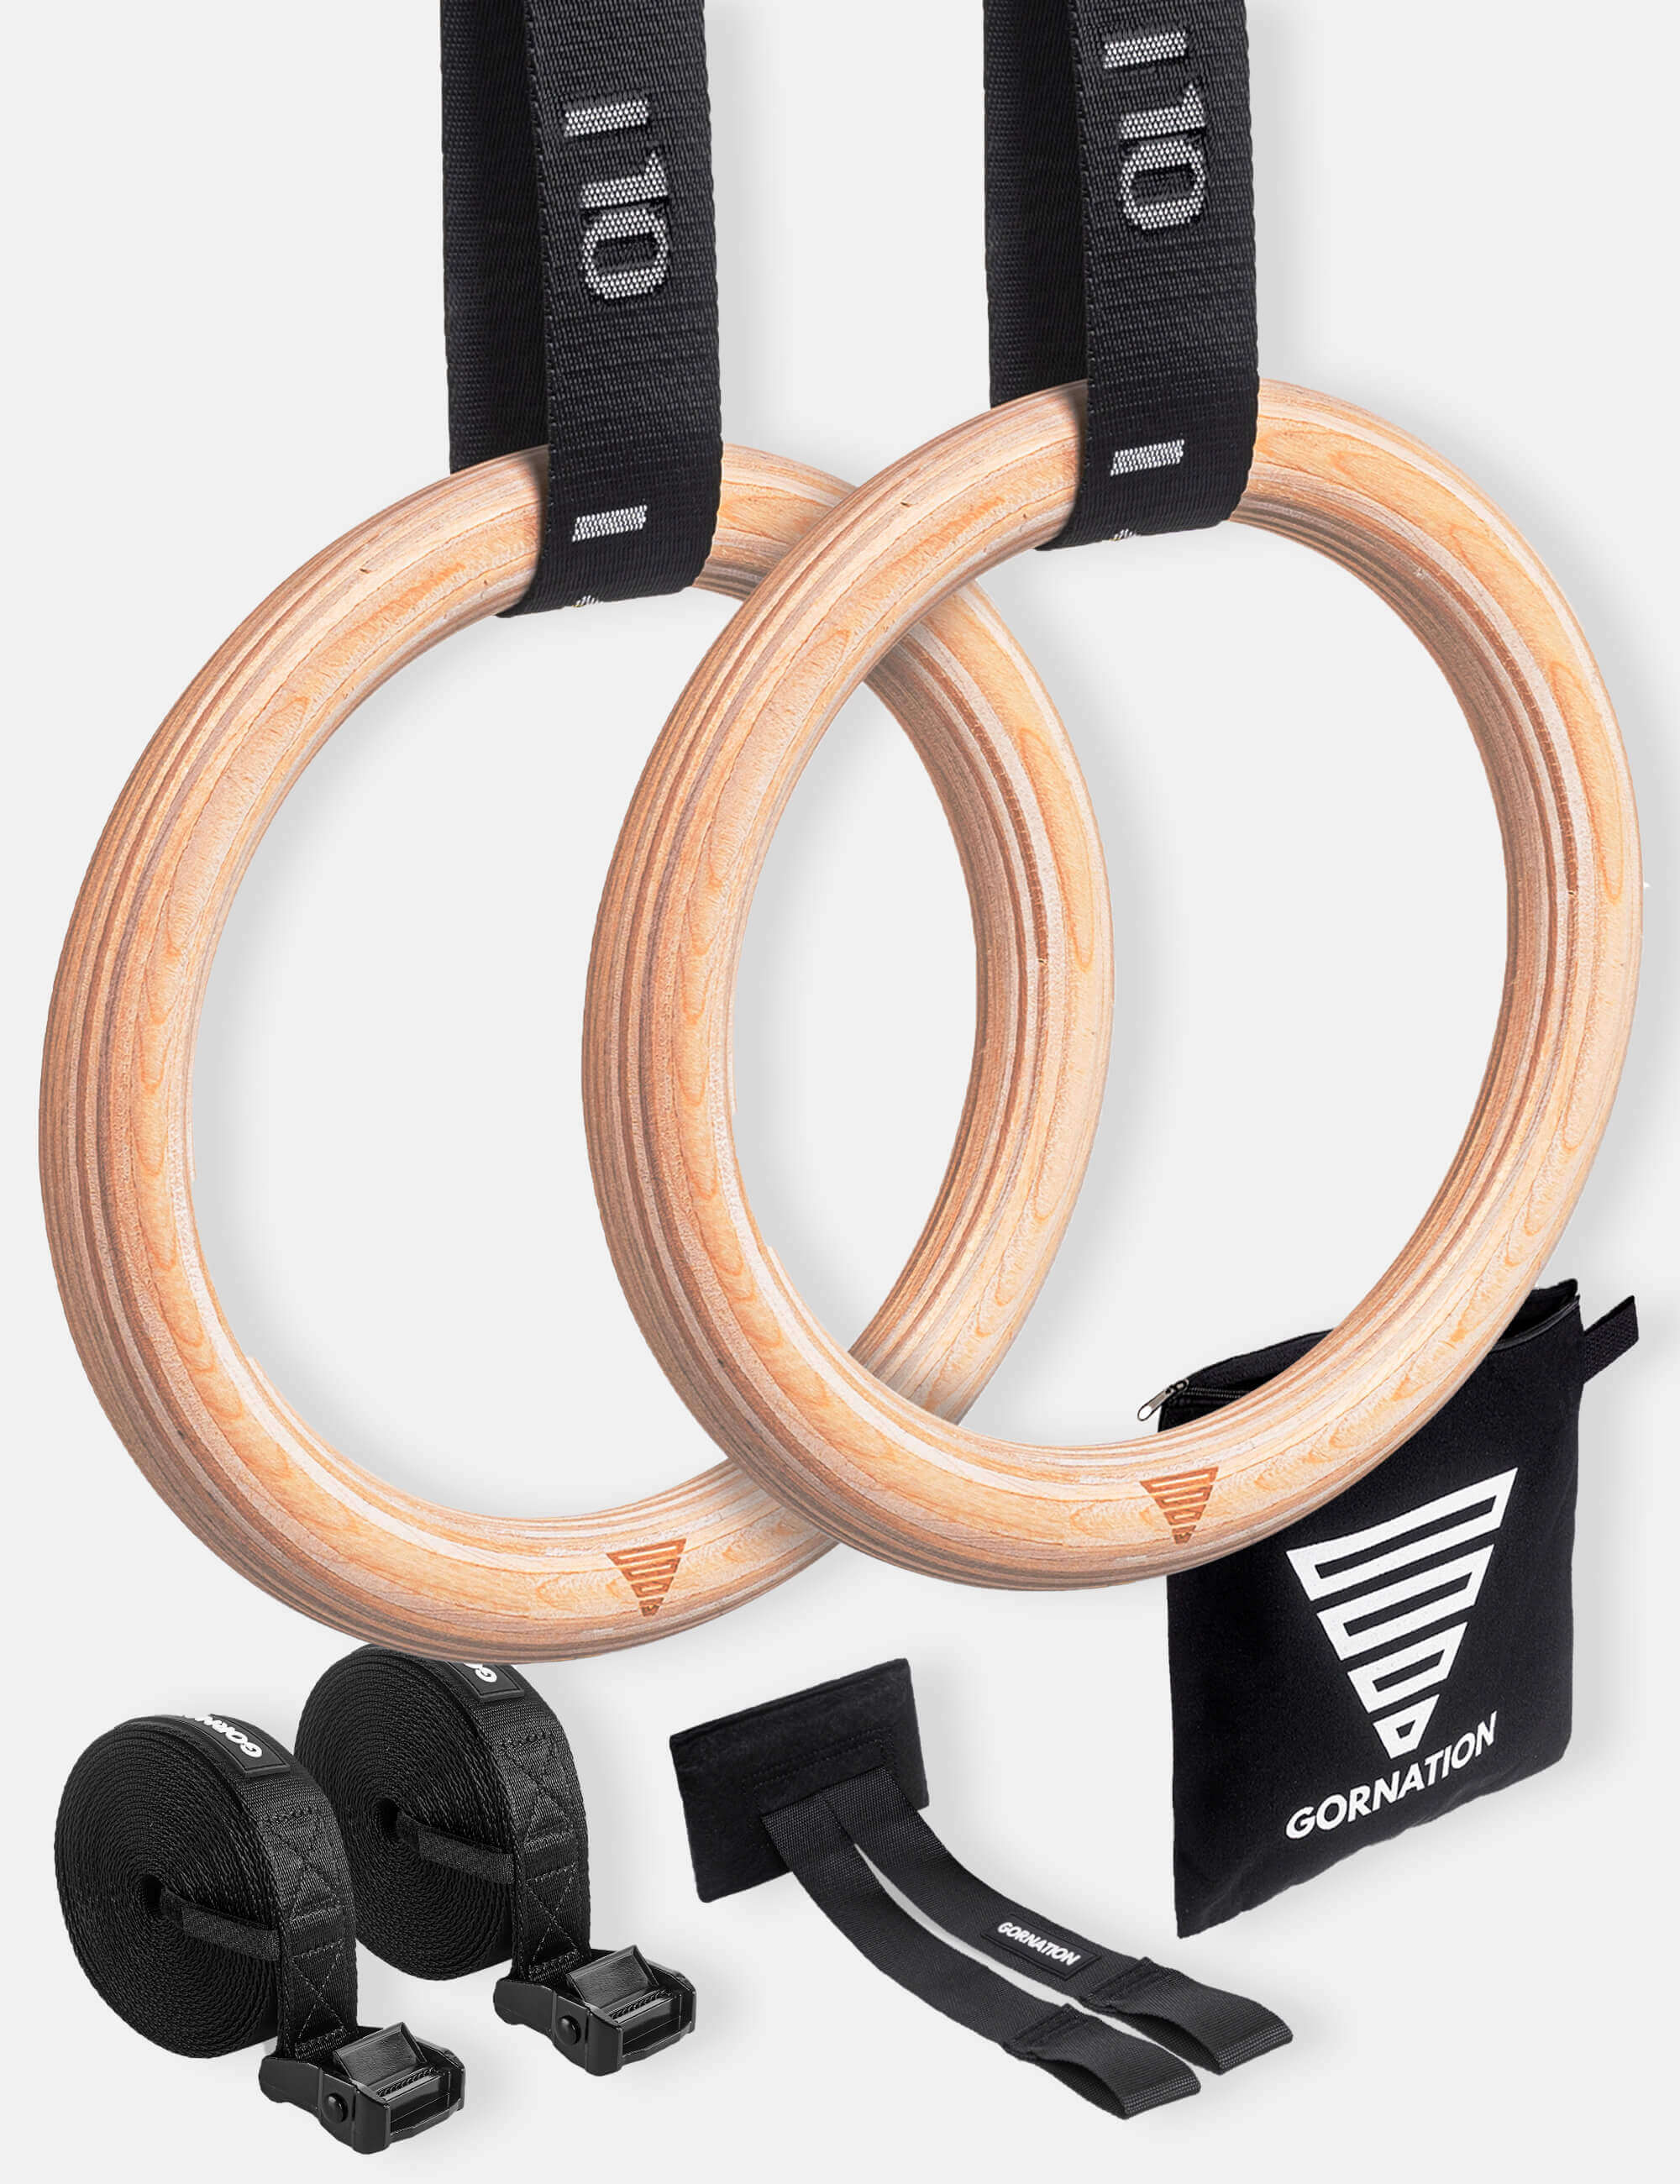 GORNATION Workout Rings Set with high quality straps, dual door anchor and a carry bag